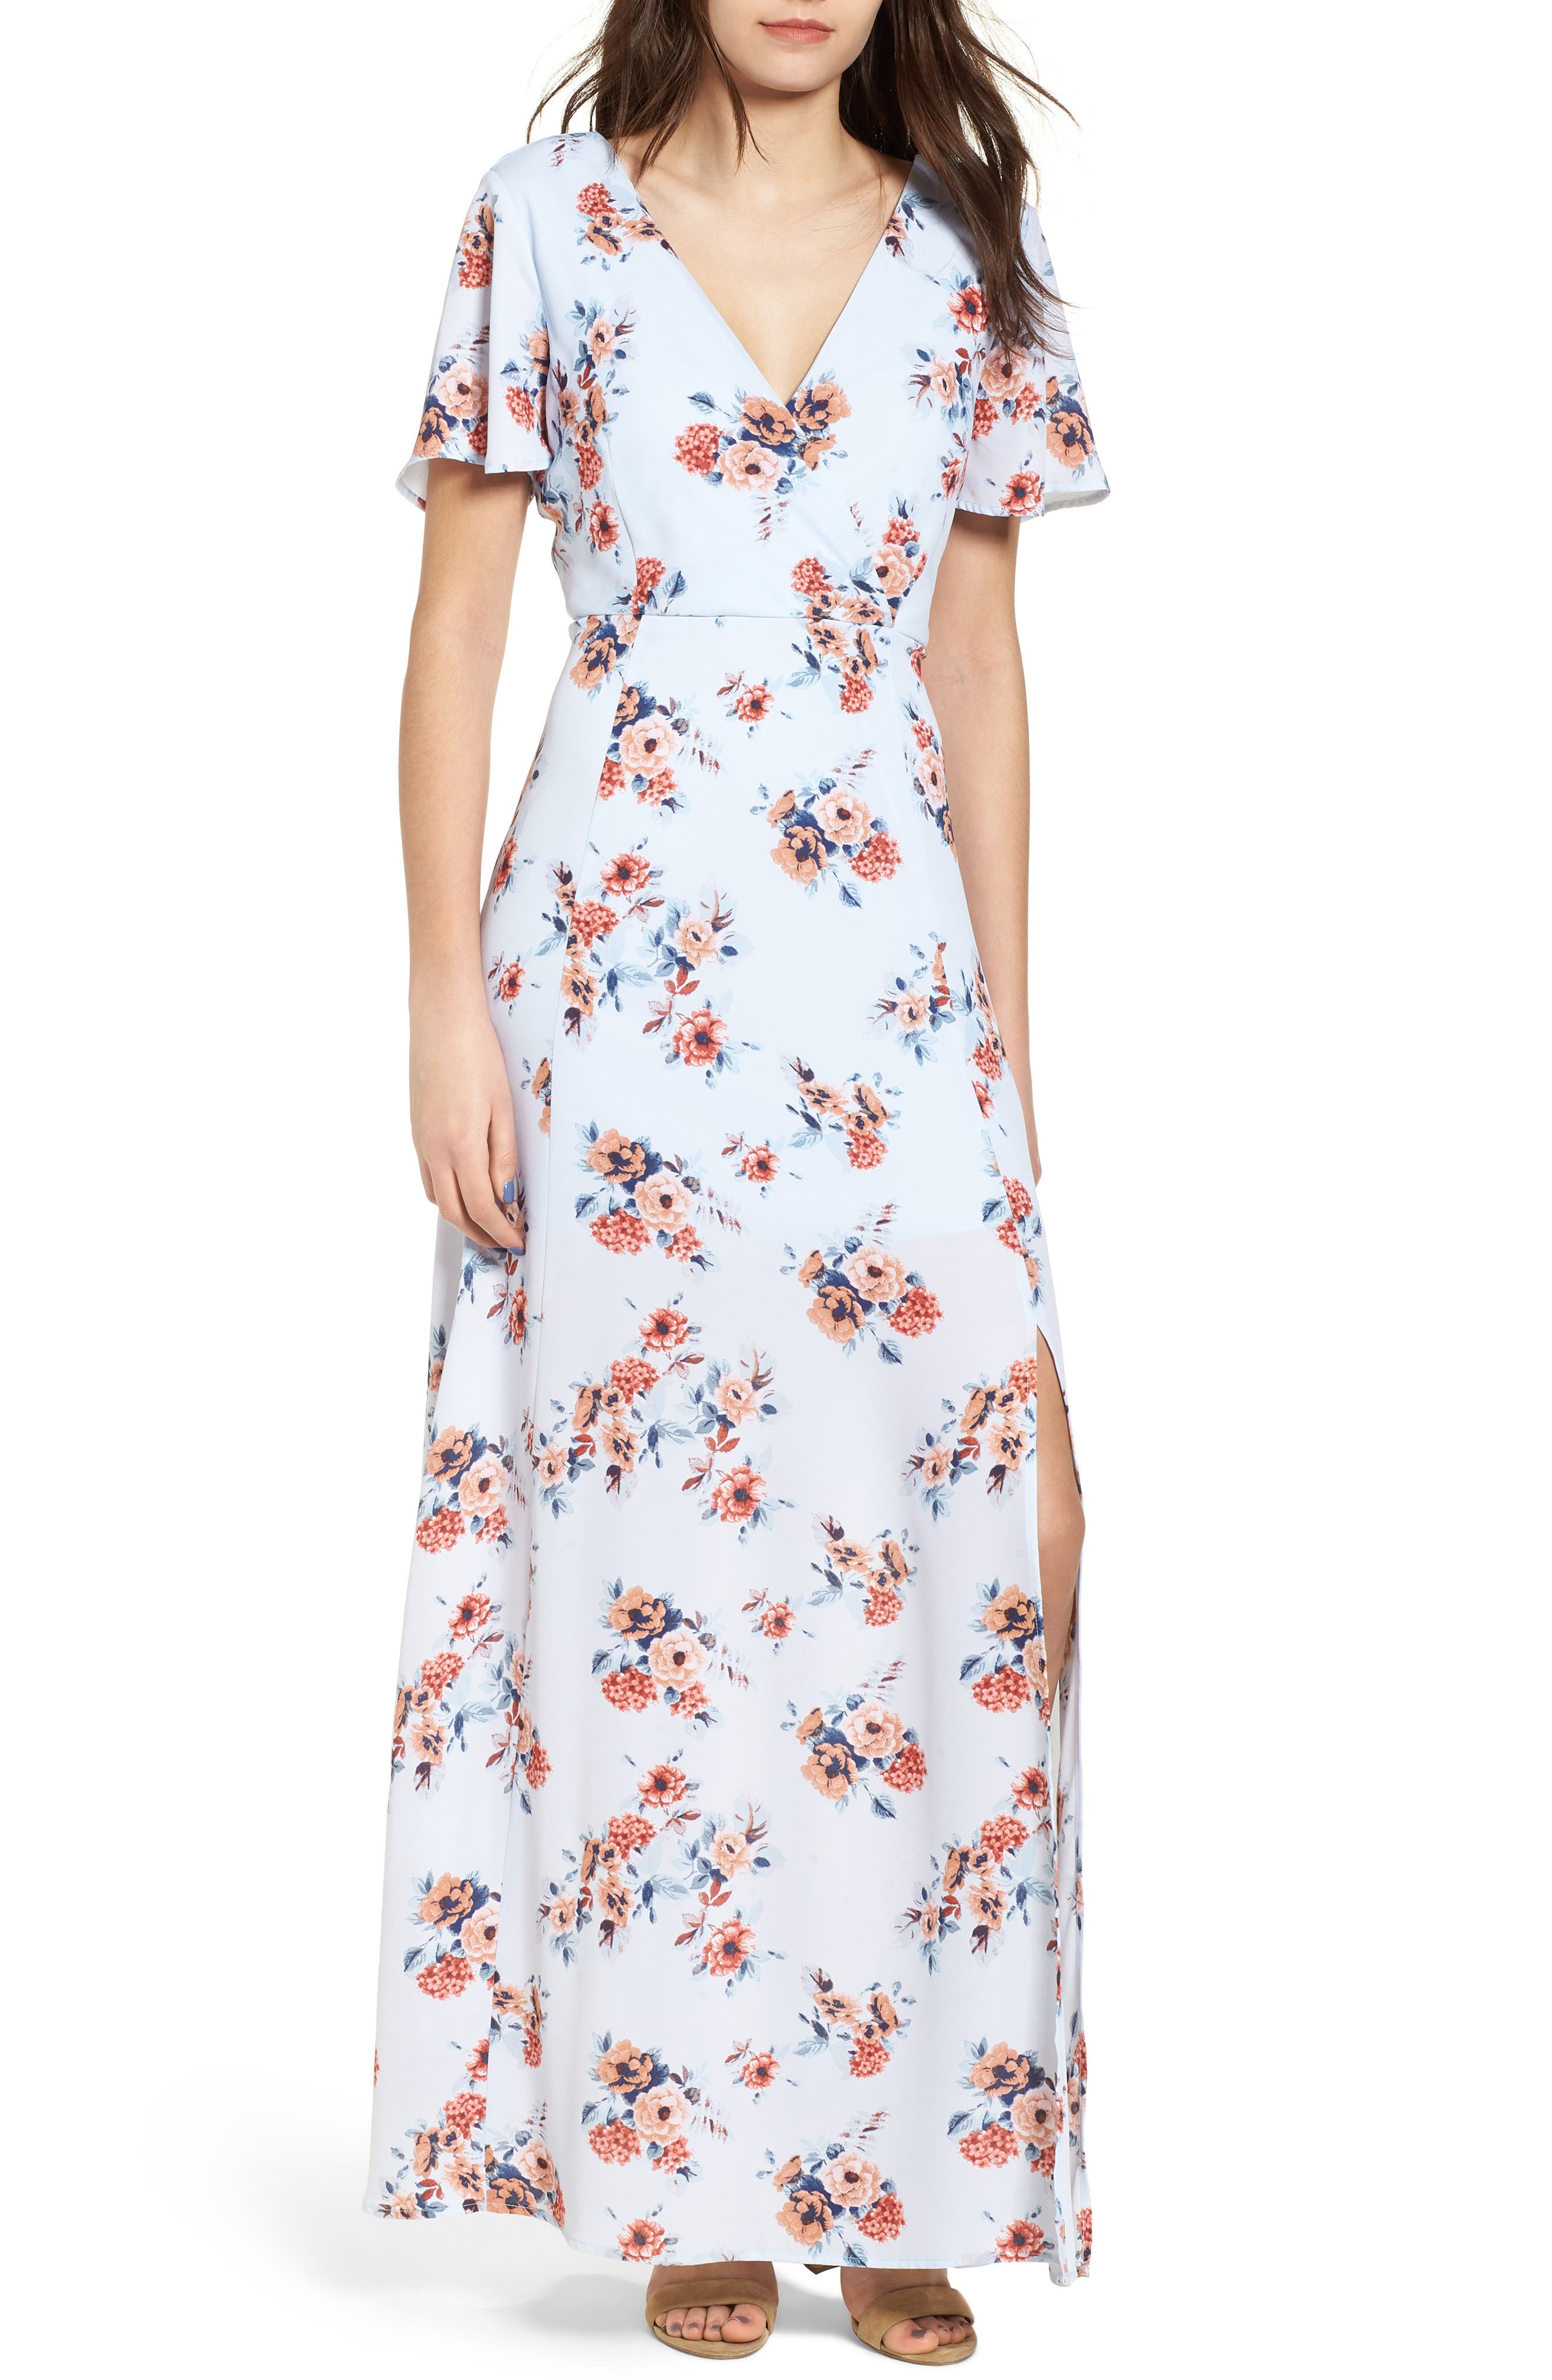 Alternate Image 1 Selected - Dee Elly Floral Maxi Dress